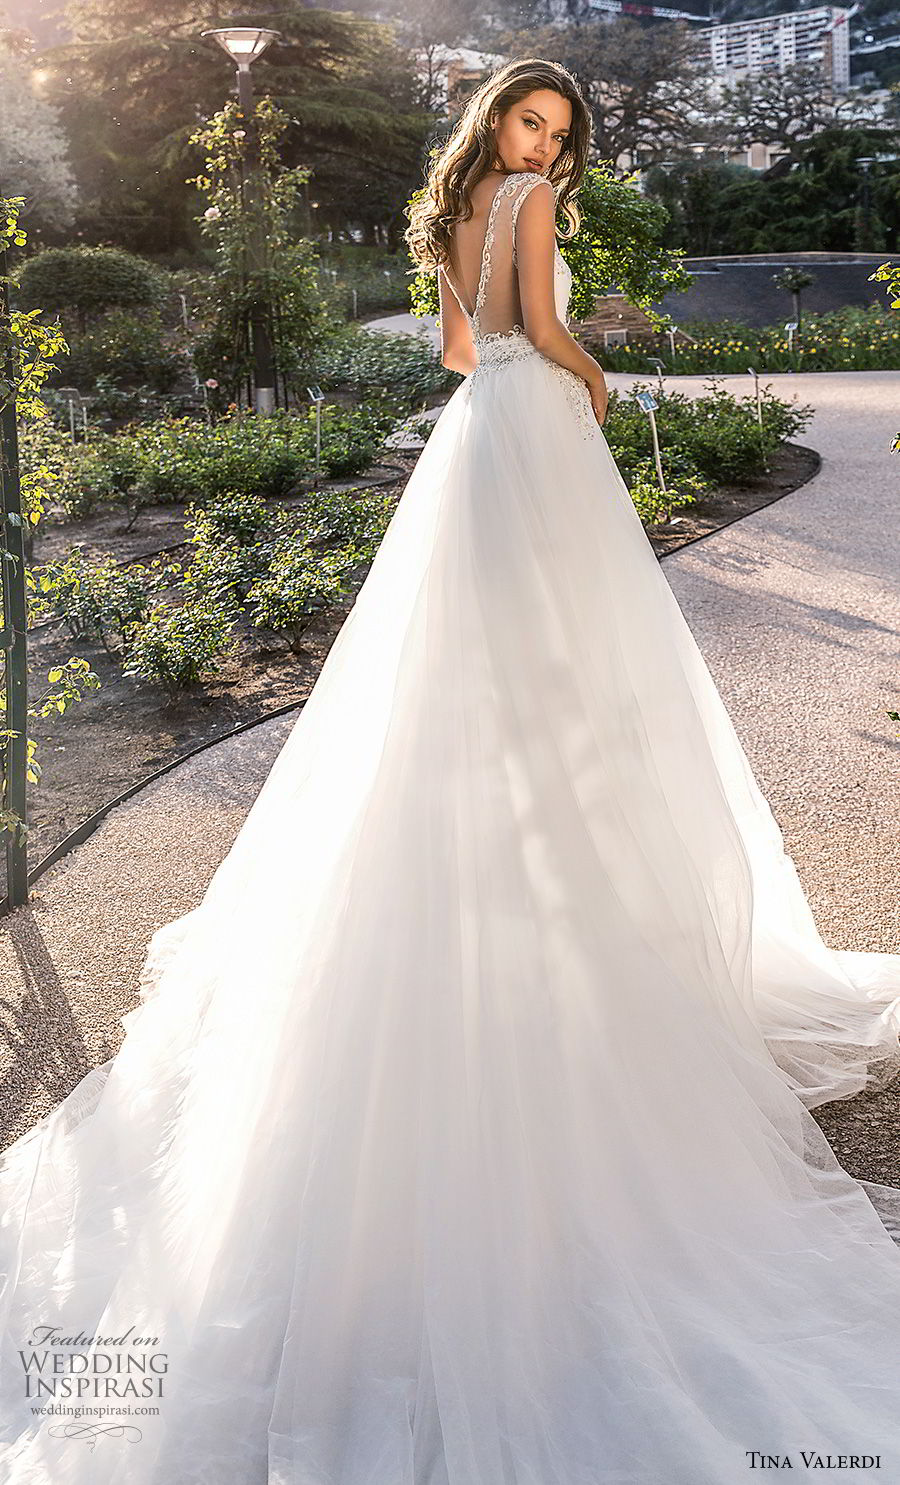 tina valerdi 2019 bridal sleeveless illusion bateau sweetheart neckline heavily embellished bodice ball gown a line wedding dress v back long train (5) bv